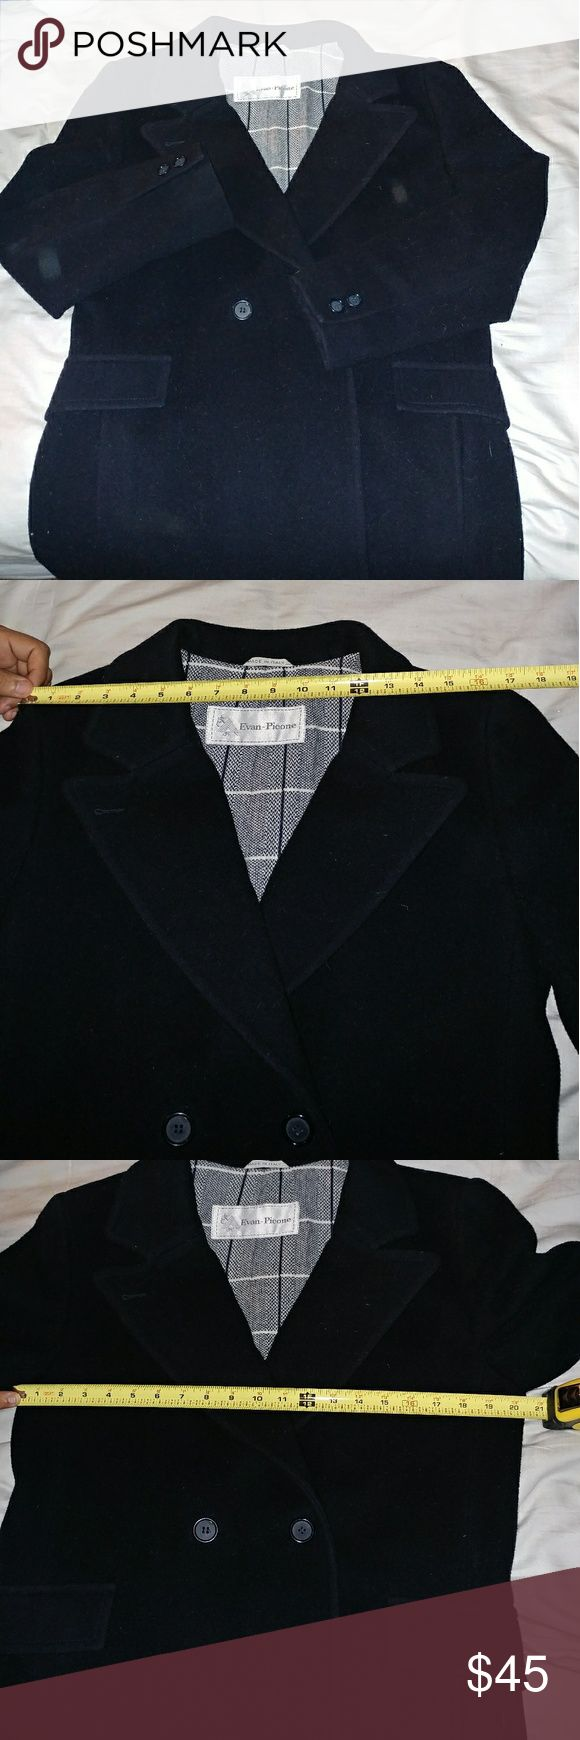 Women's Peacoat 100% Wool All measurements are provided by photo.  100% Wool Made in Italy Purchased at Neiman Marcus Last two photos show minor show of wear *Does need to be dry cleaned* Evan Picone Jackets & Coats Pea Coats